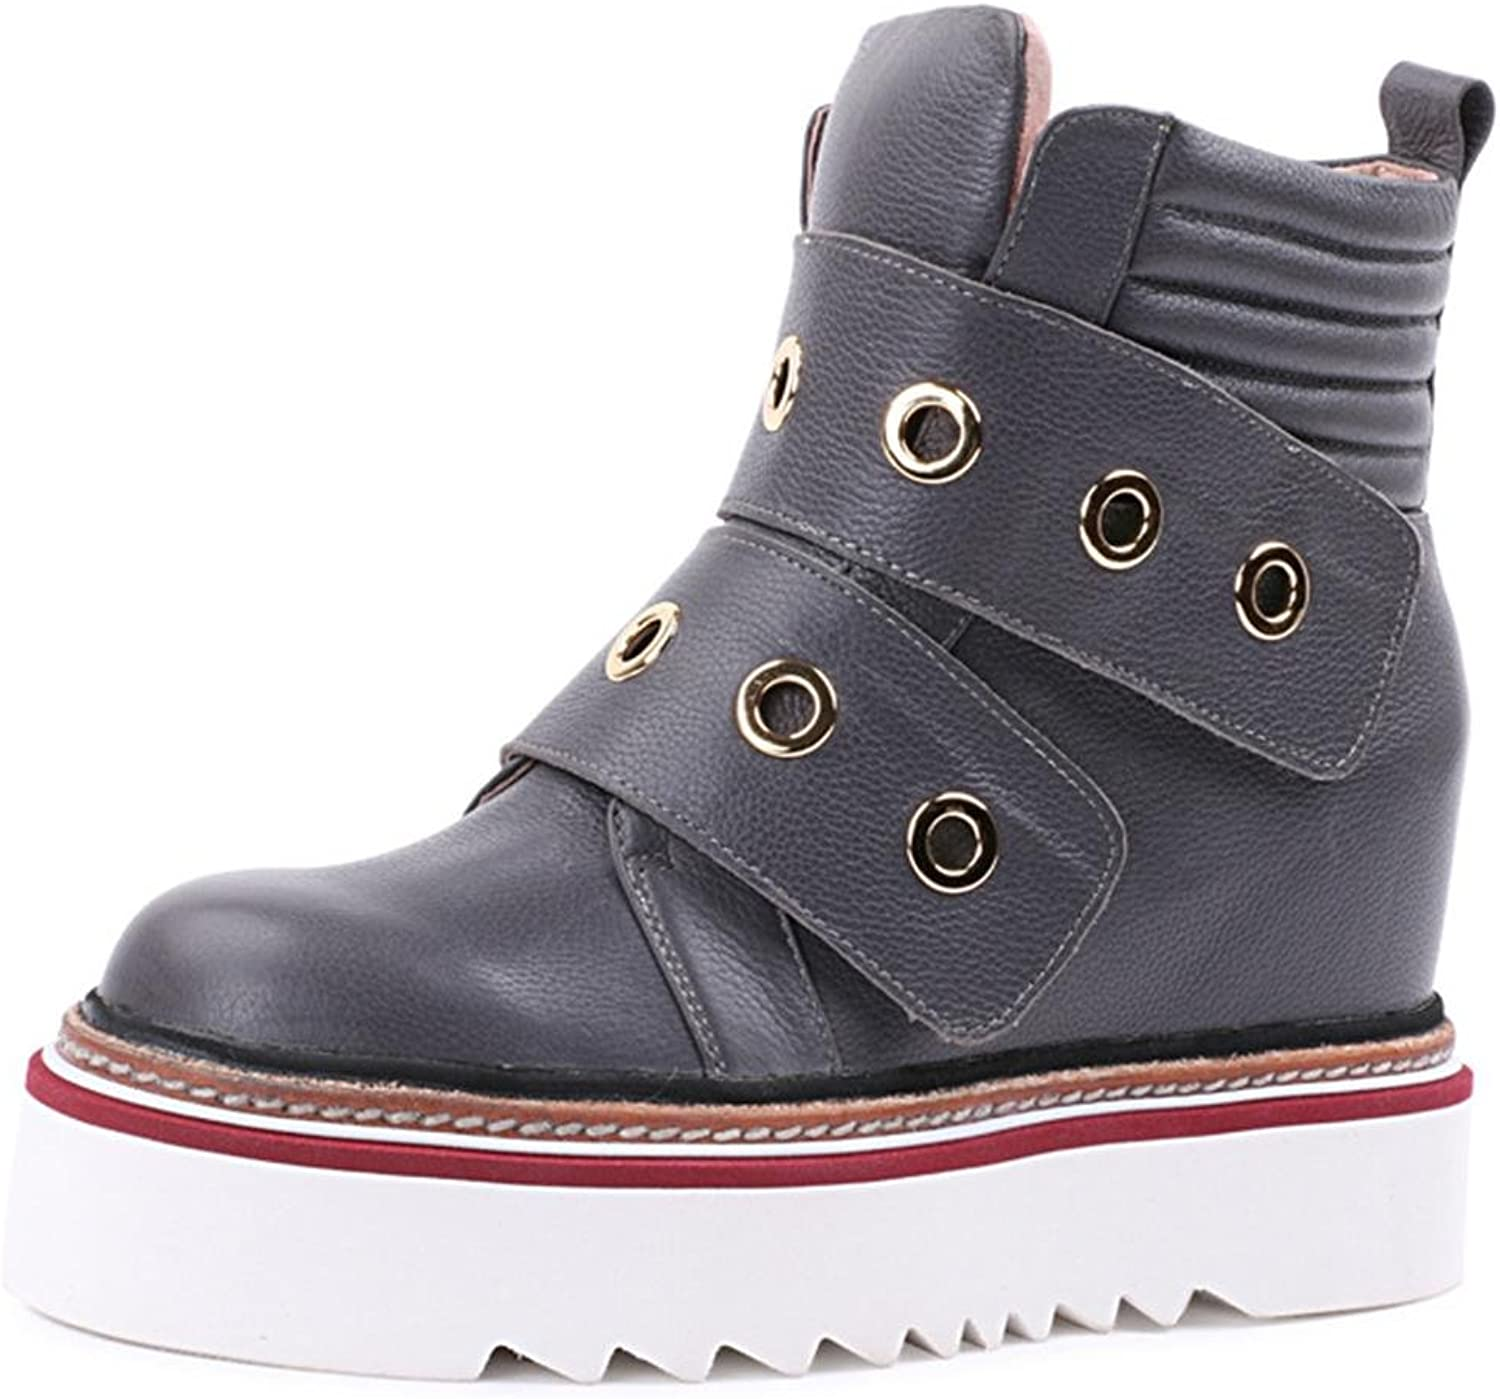 XUANshoes L&L Women's Boots Retro Martin Boots Female Within The Increase Loose Cake at The end Large Size Women Boots 8072FD